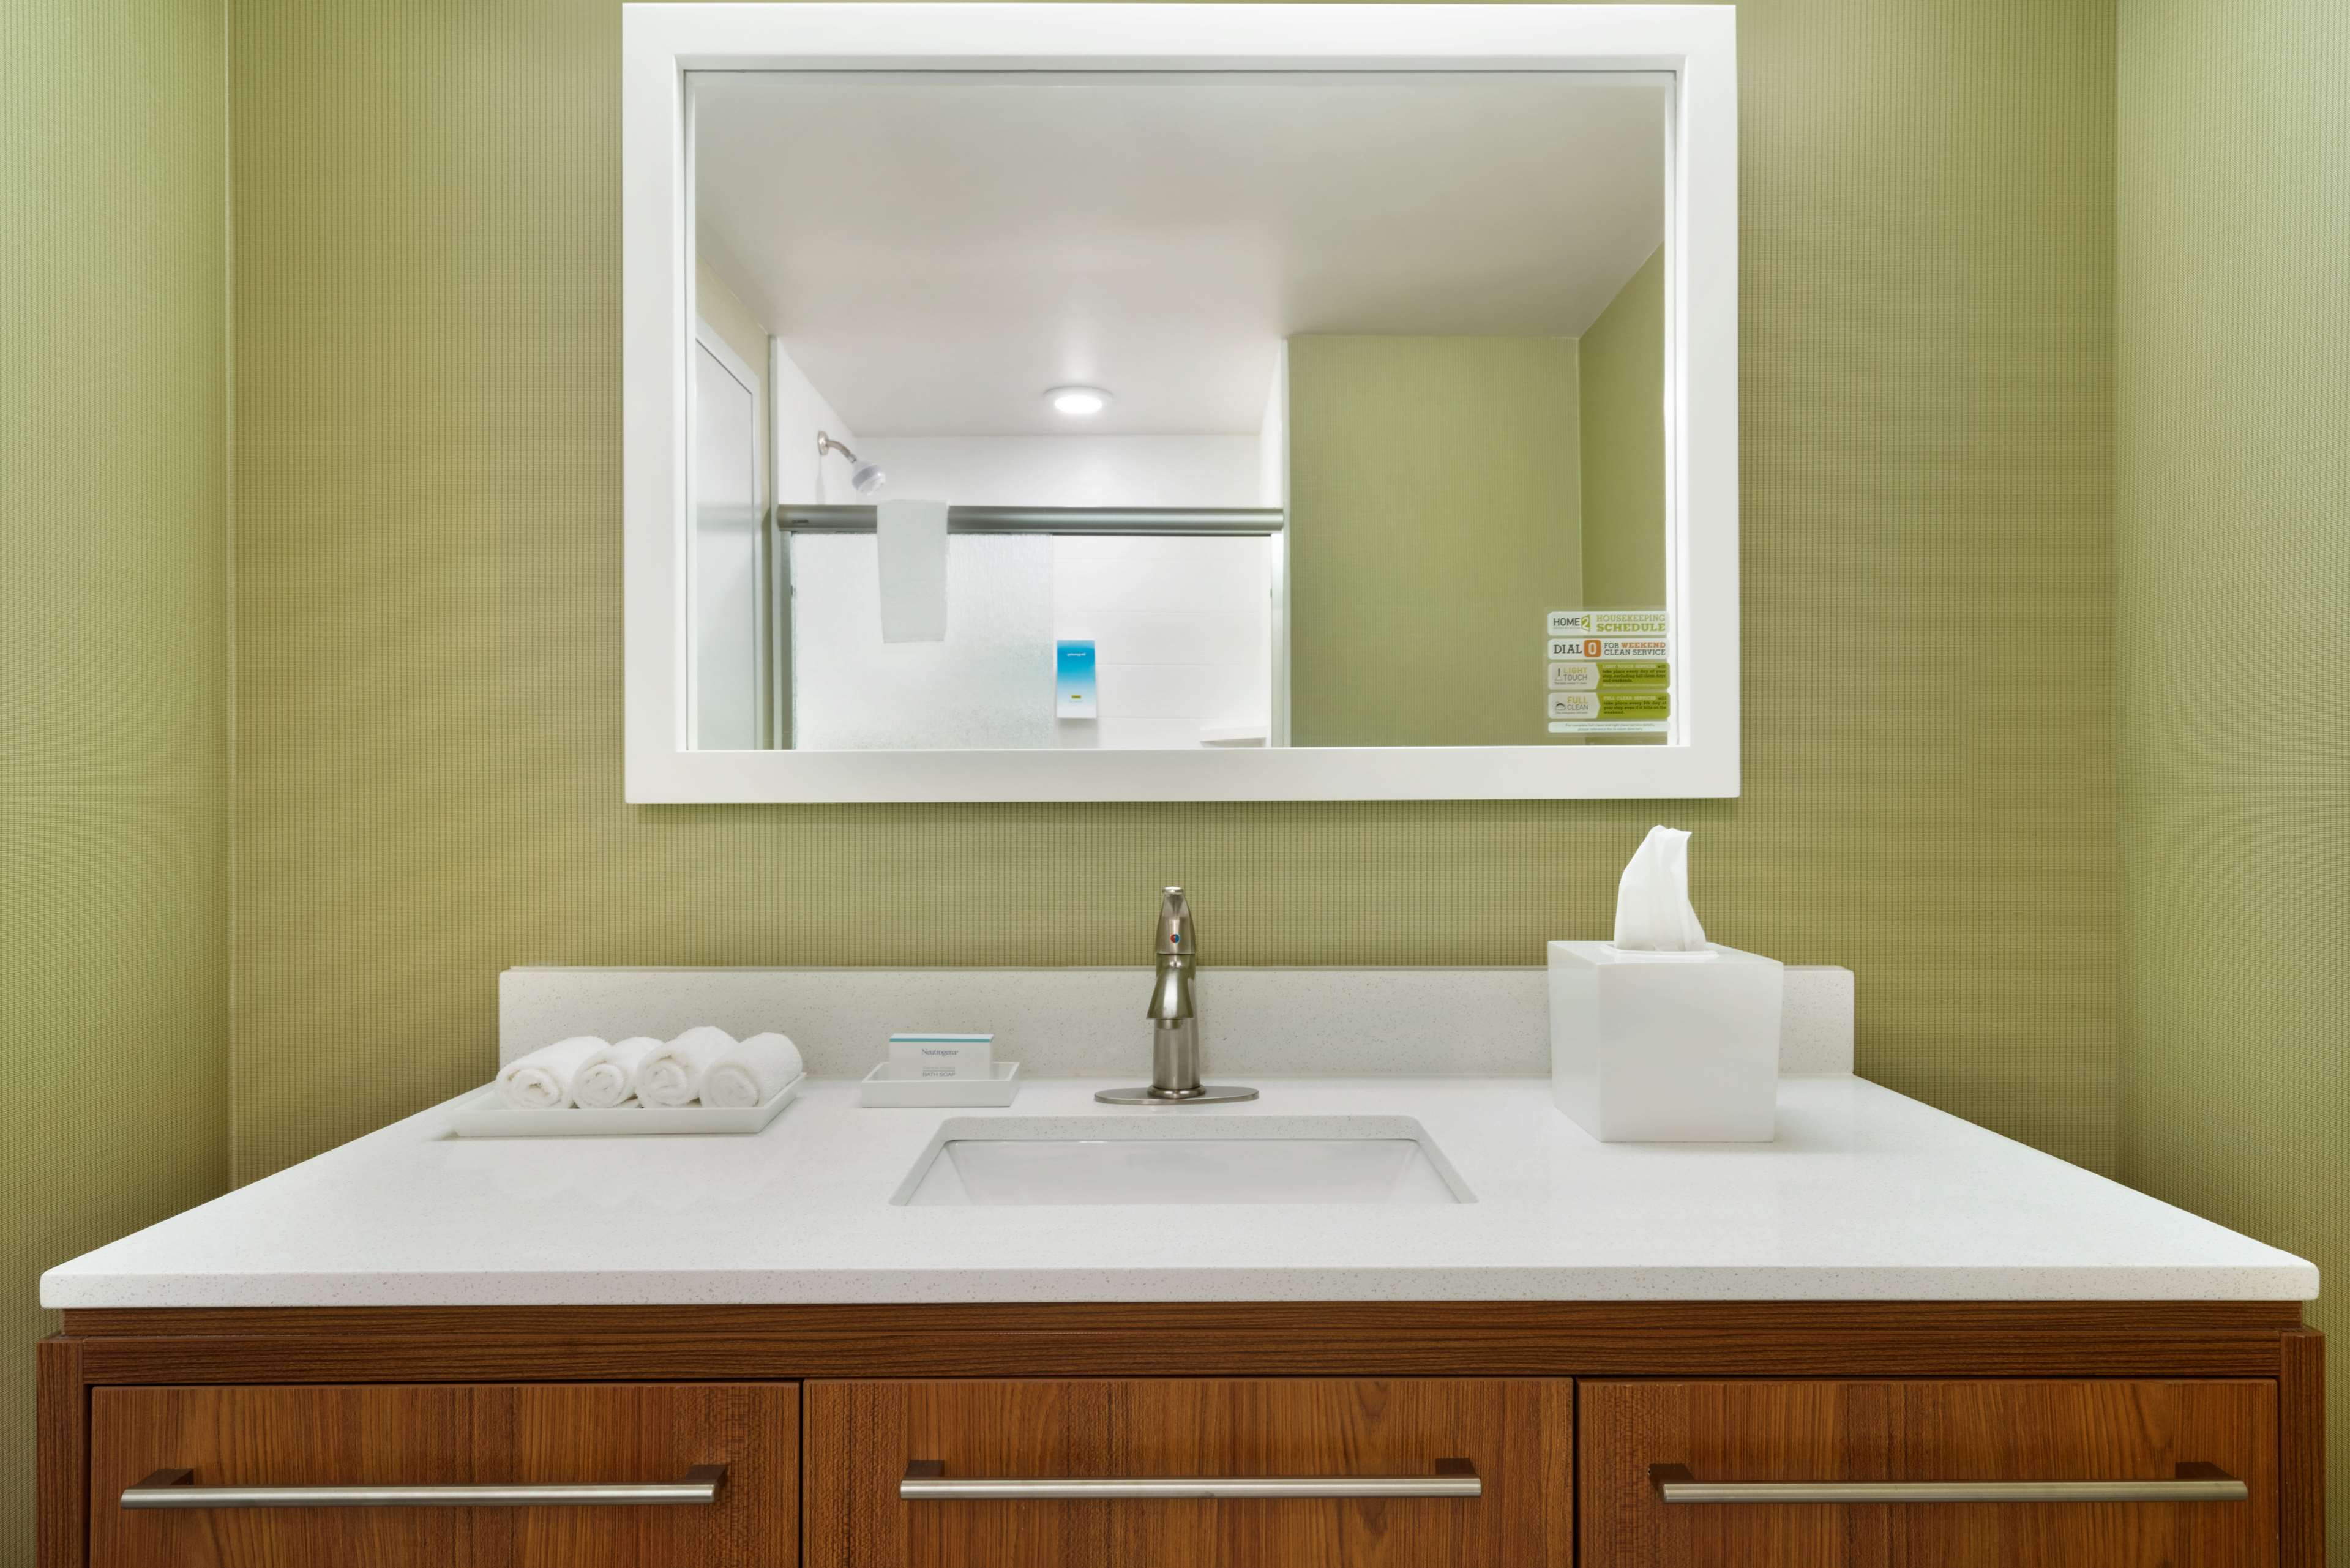 Home2 Suites by Hilton Roanoke image 17